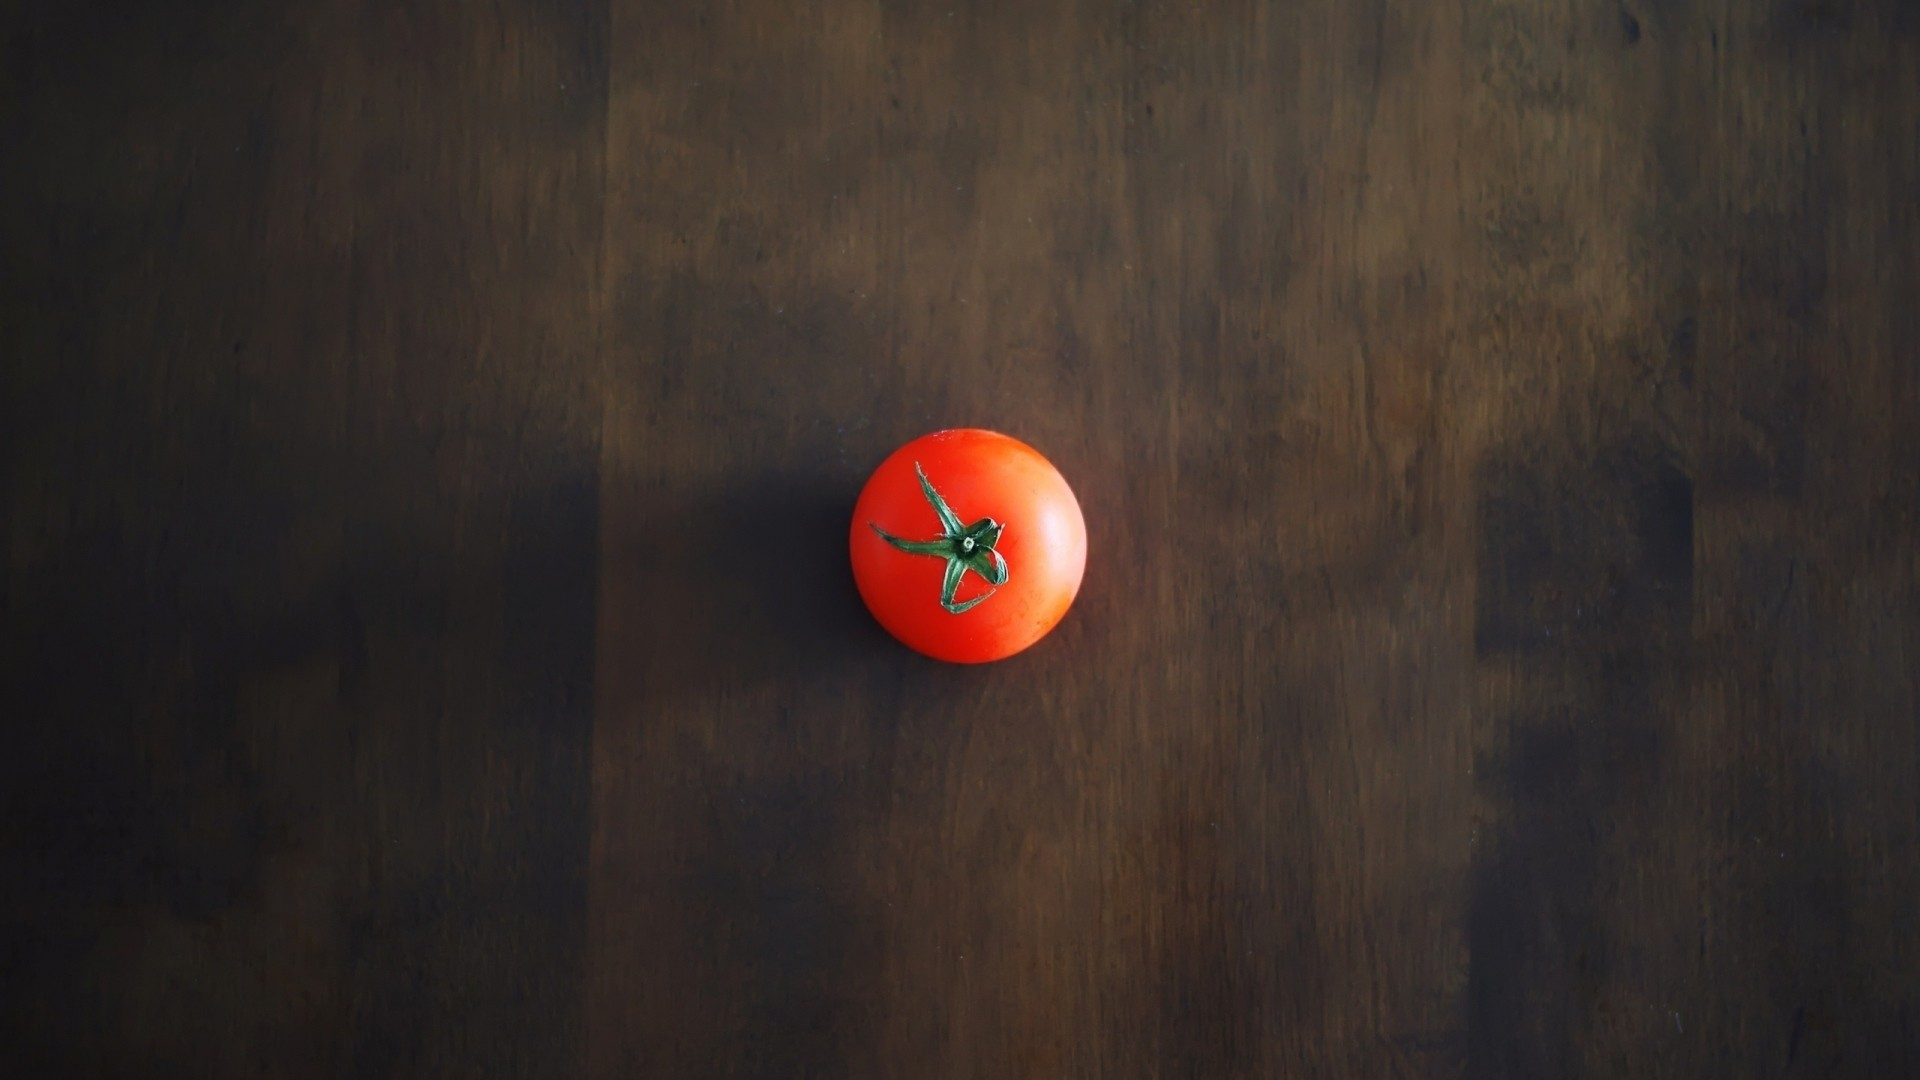 Preview wallpaper minimalism, tomato, red, table, wall, shadow, background  1920×1080